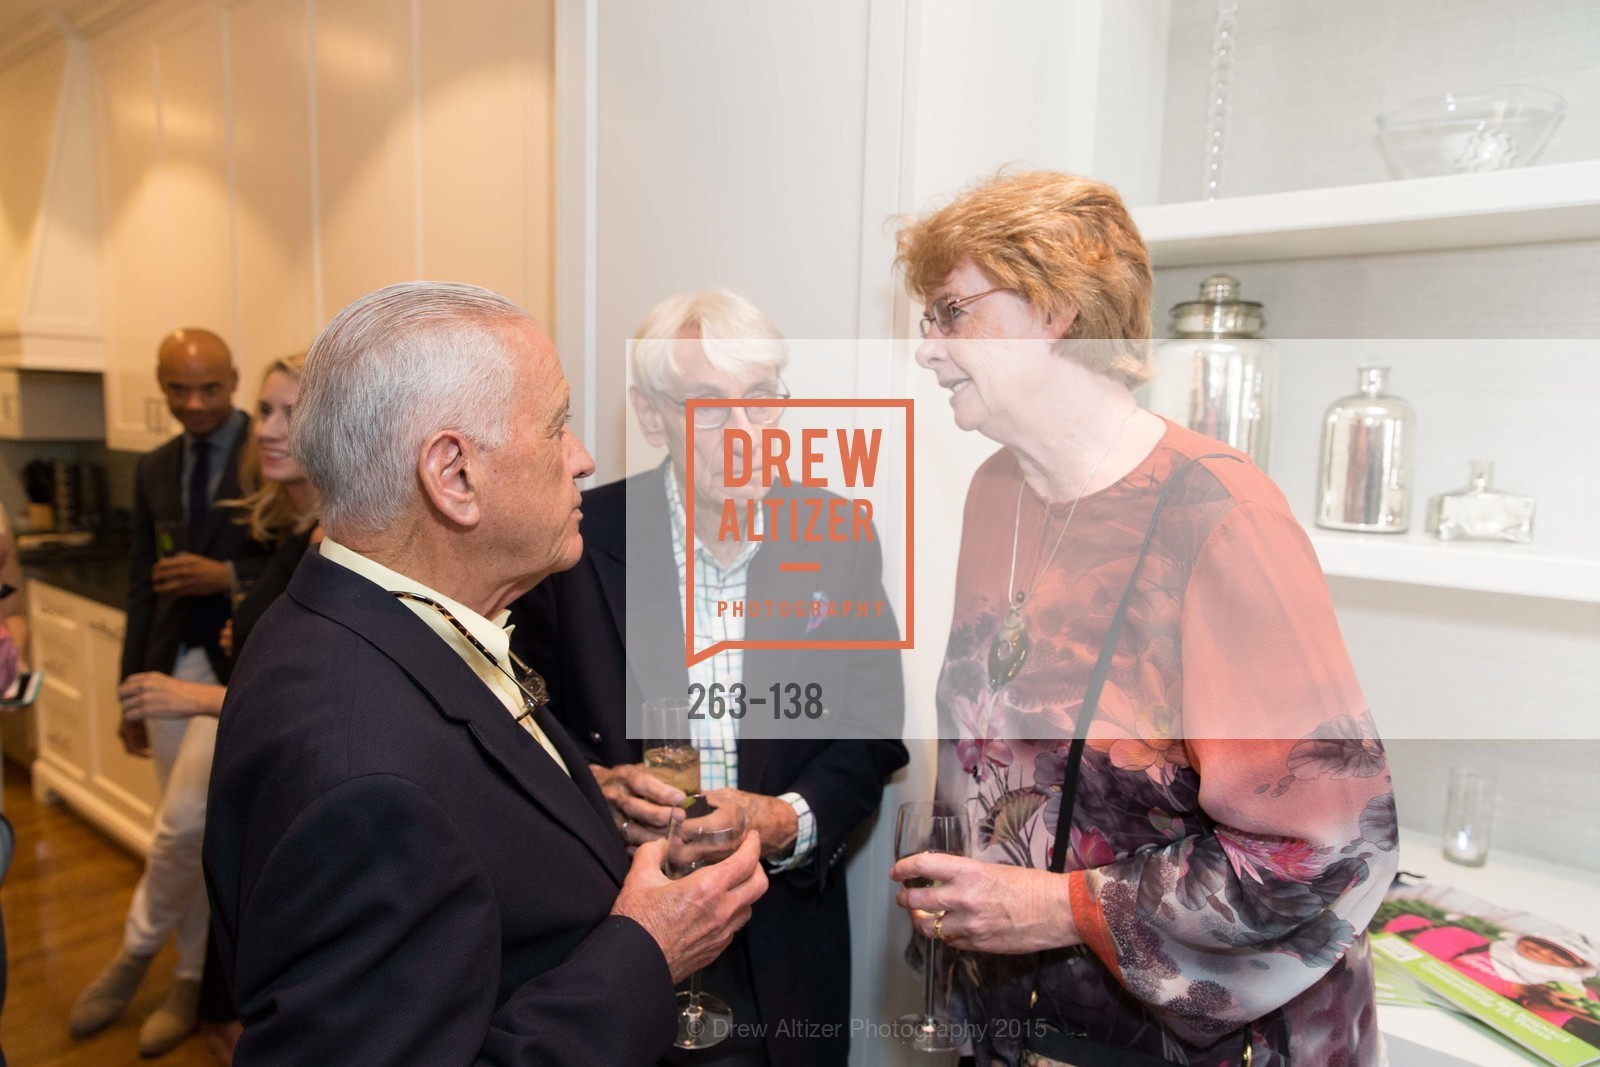 Les Bellville, Lynn Lohr, Fair Trade USA: Tapas, Sangria & Music, Private Residence, May 29th, 2015,Drew Altizer, Drew Altizer Photography, full-service agency, private events, San Francisco photographer, photographer california